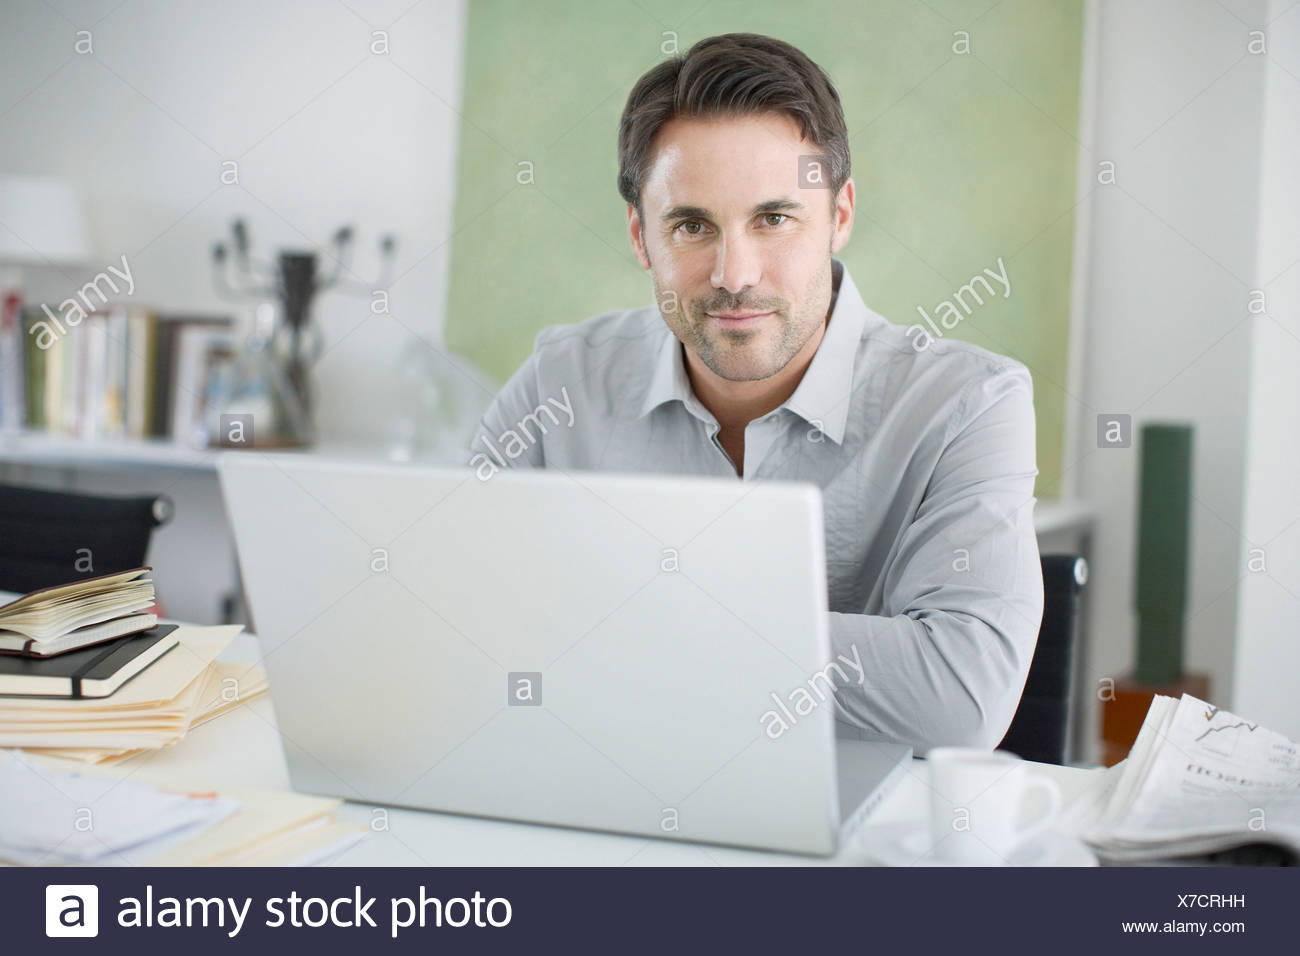 Man working from home - Stock Image